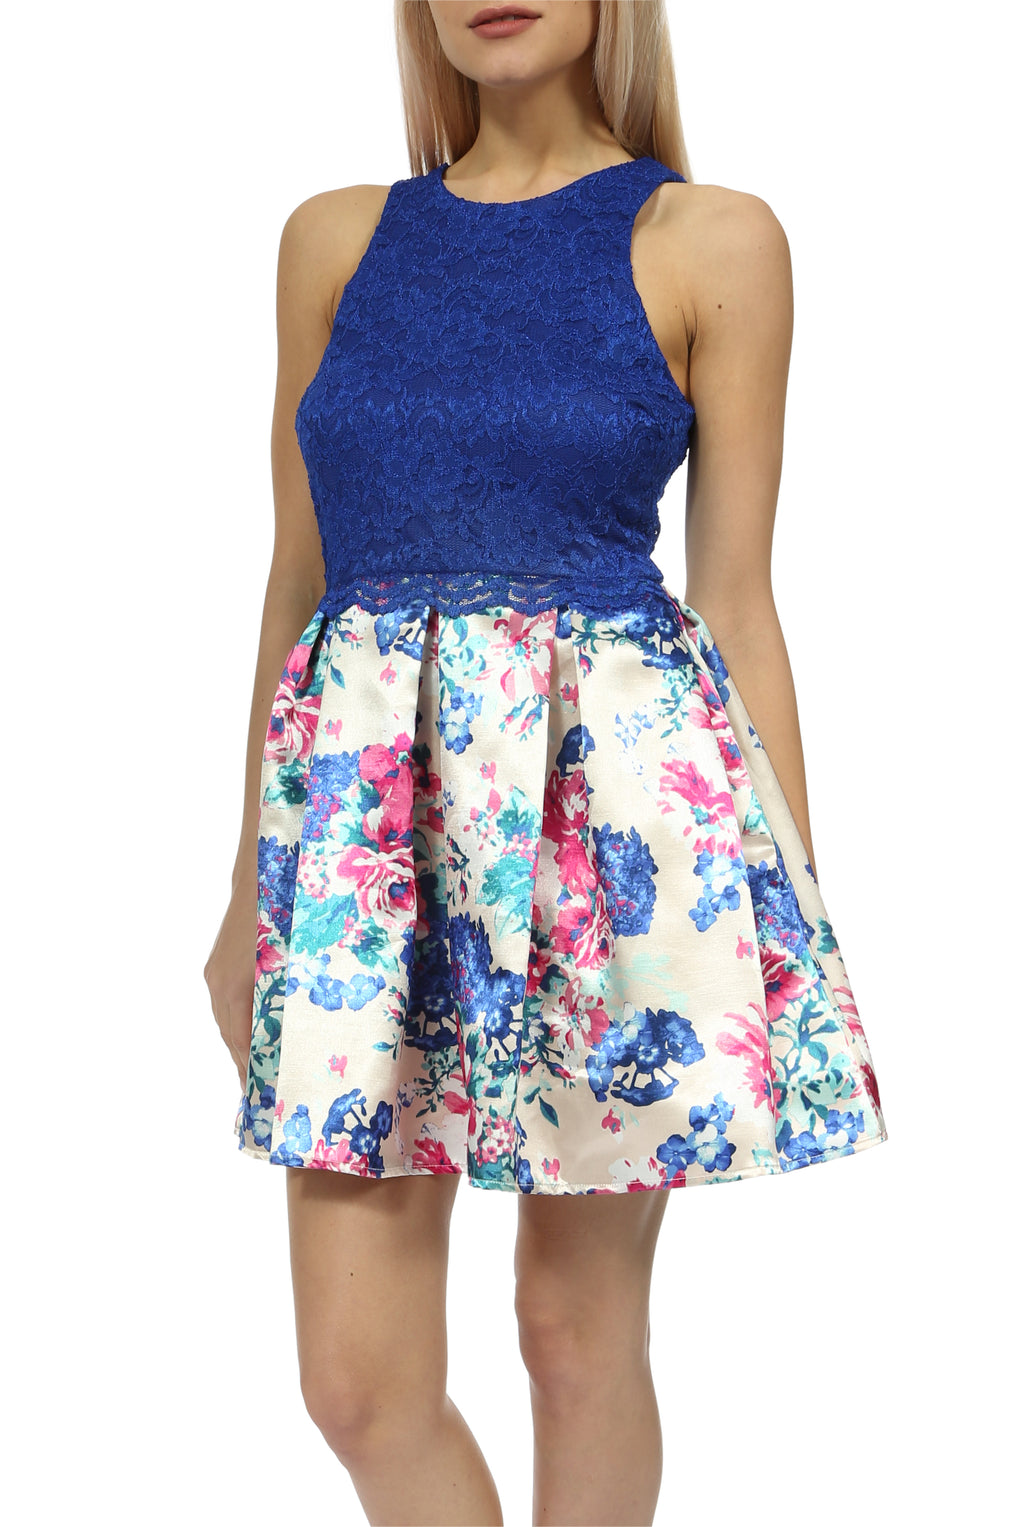 Teeze Me | Sleeveless Lace Top and Printed Skirt Dress  | Royal/Multi